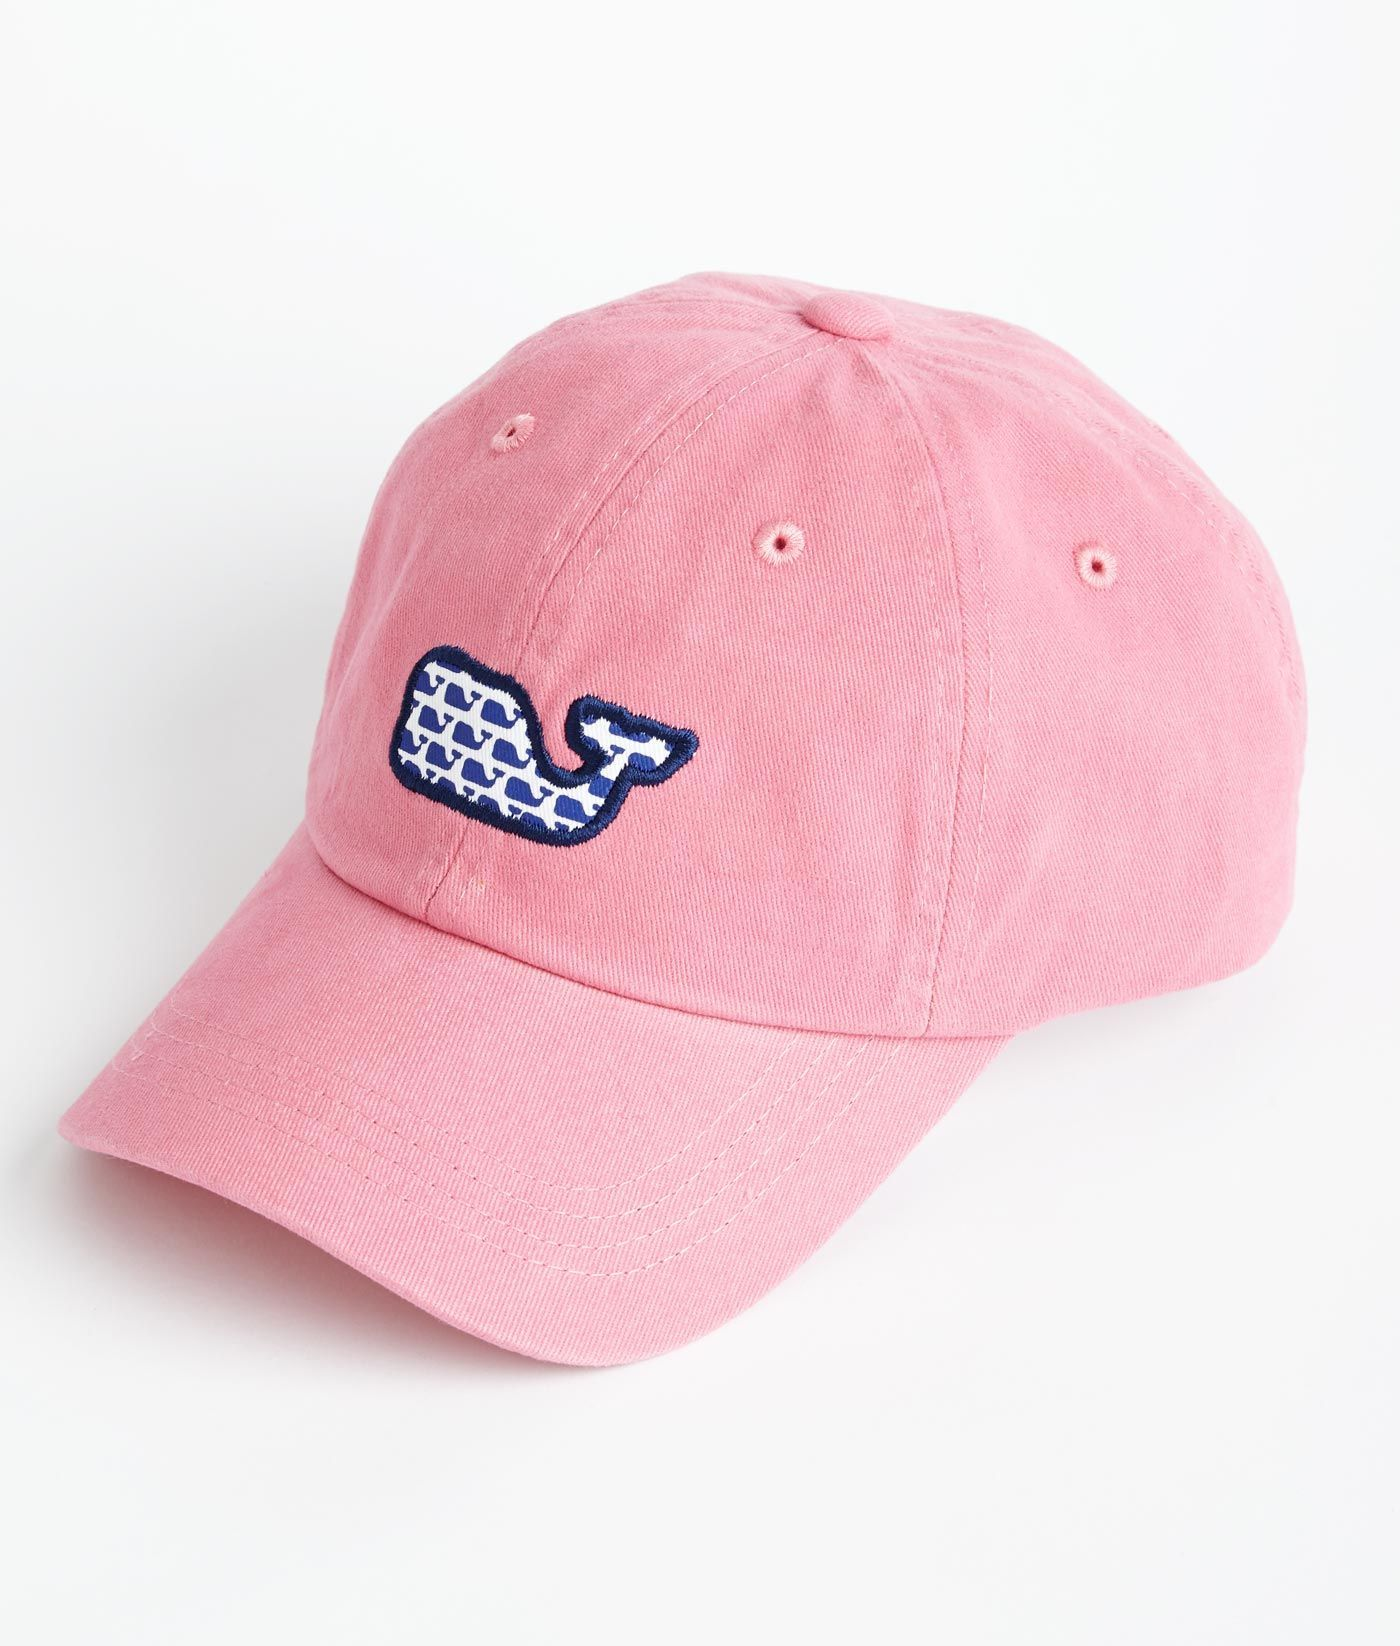 6bdc93a084d COME ON! Womens Hats  Vineyard Whale Baseball Cap – Vineyard Vines ...